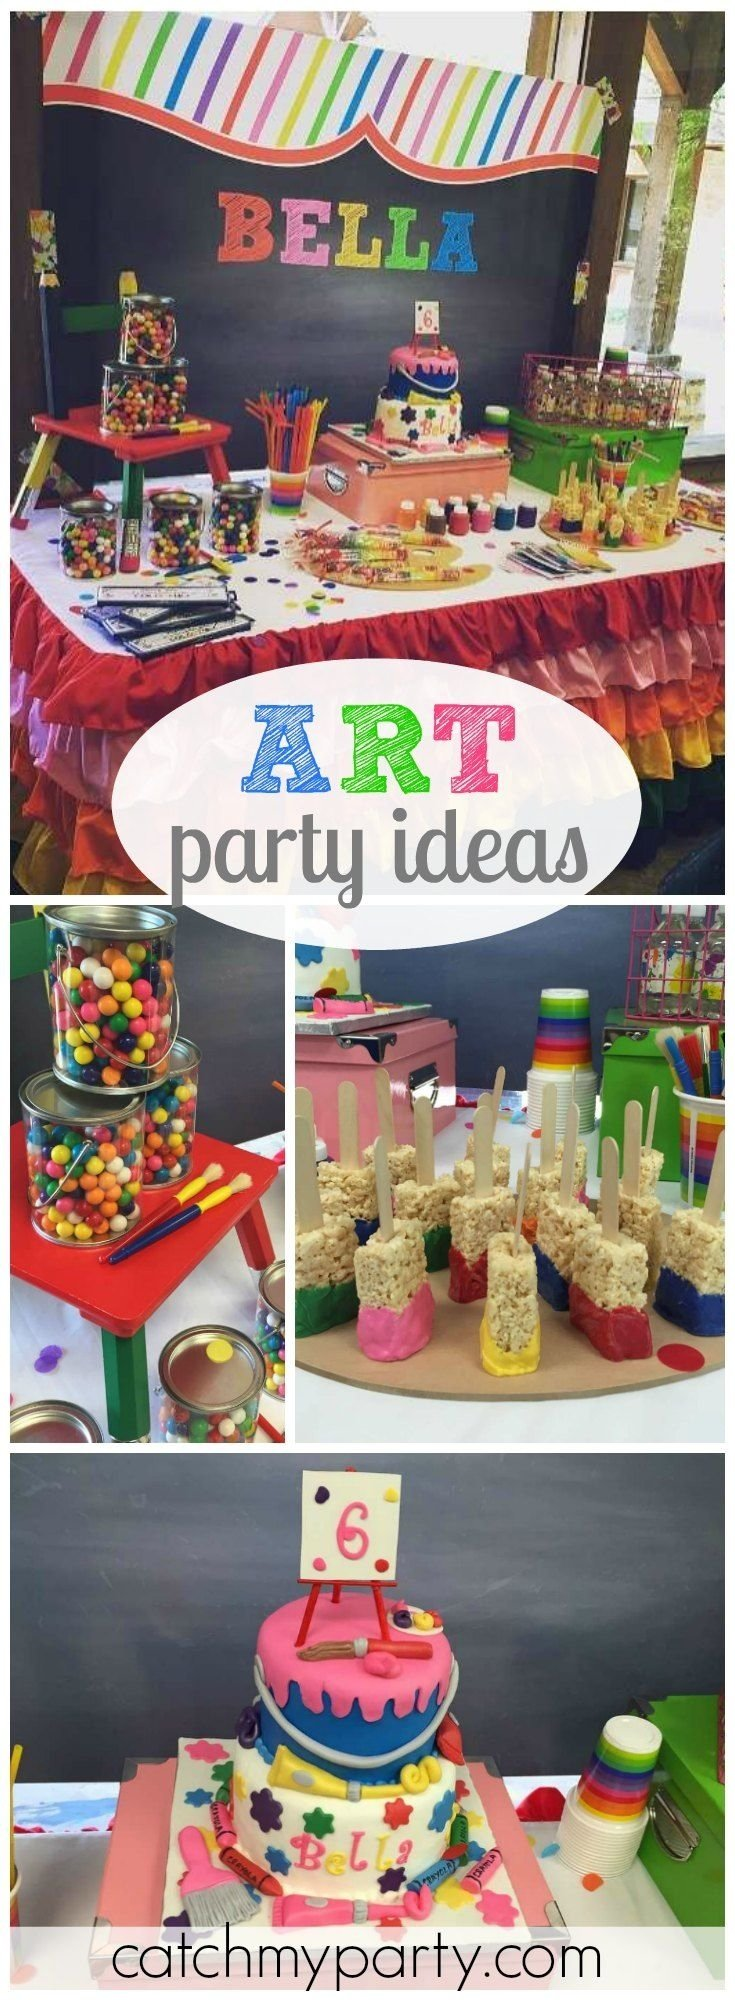 10 Fashionable Fun Party Ideas For Kids 272 best art party ideas images on pinterest birthday party ideas 7 2020